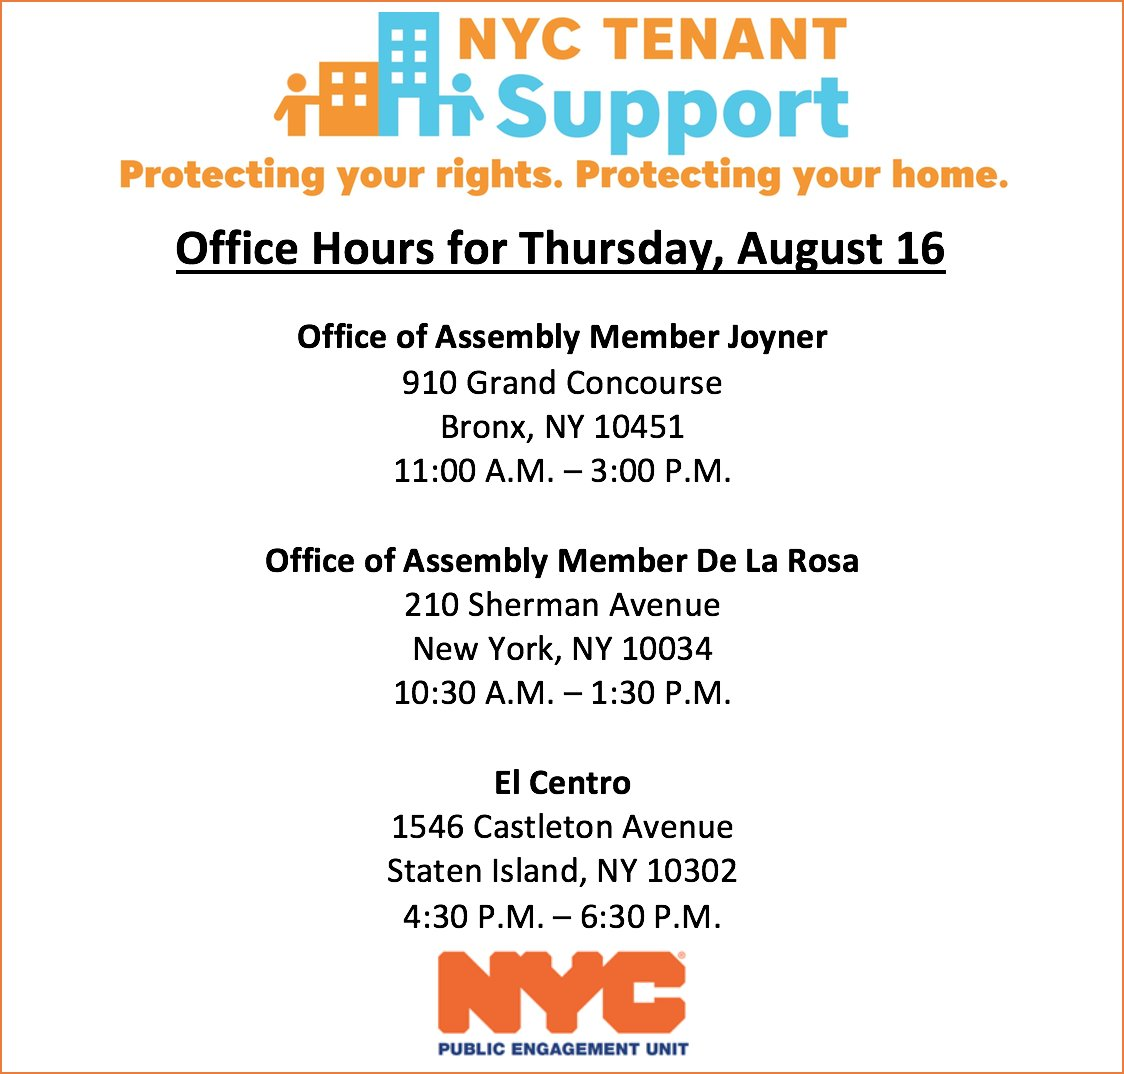 Are you a tenant experiencing landlord harassment, at risk of eviction, or do you need help making home repairs? The NYC Tenant Support Unit offers free assistance in your language. Stop by today&#39;s events w/ @JoinJoyner @CnDelarosa @elcentrony or visit  http:// nyc.gov/TenantSupportU nit &nbsp; … .<br>http://pic.twitter.com/aYVF3mSlKi